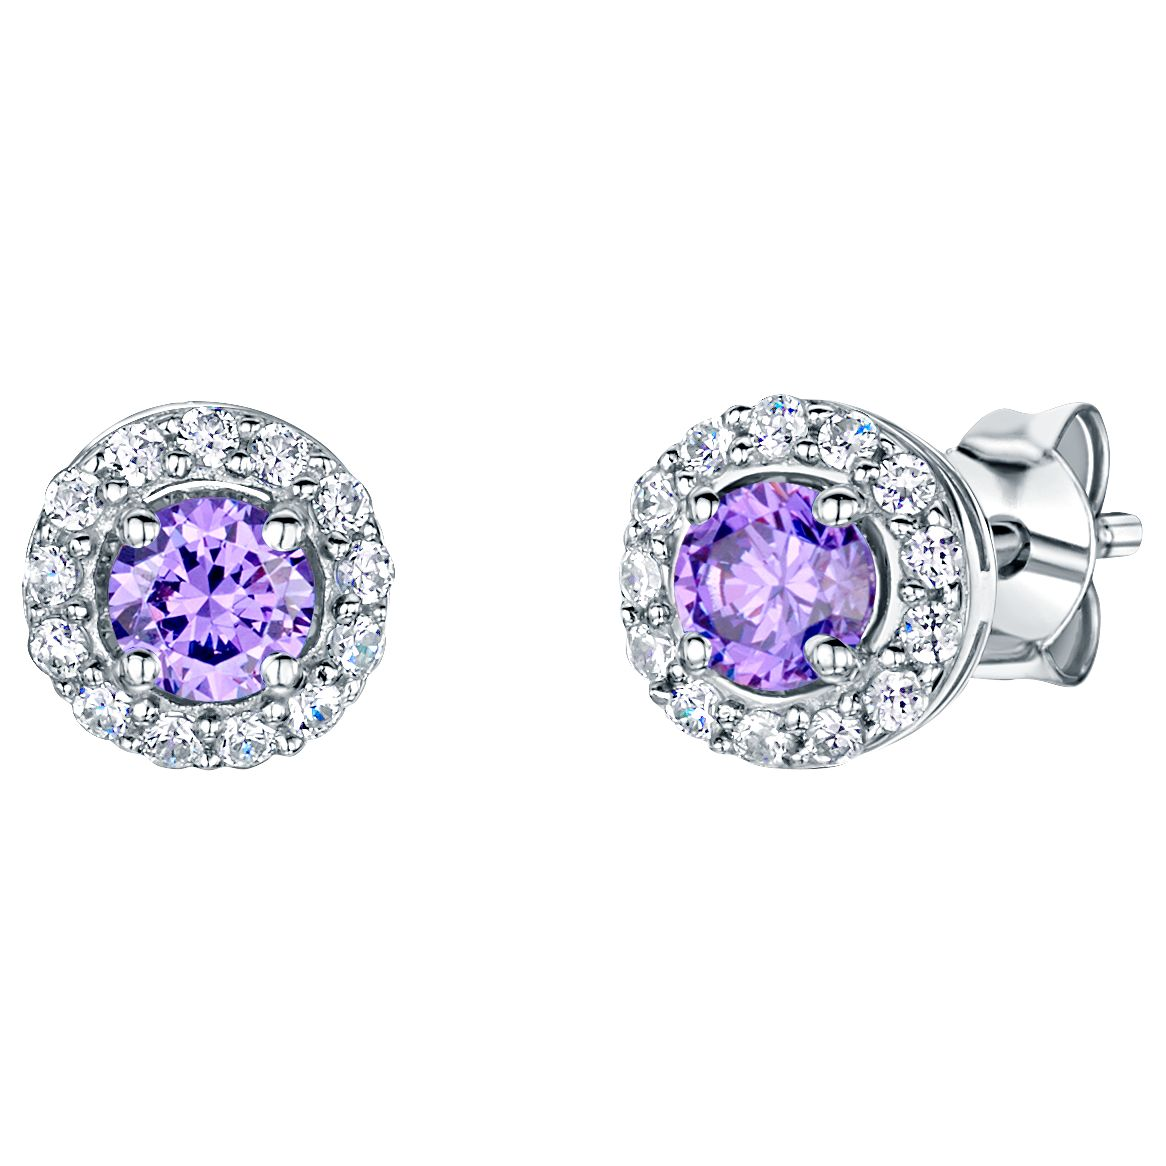 Jools by Jenny Brown Jools by Jenny Brown Pavé Surround Round Cubic Zirconia Stud Earrings